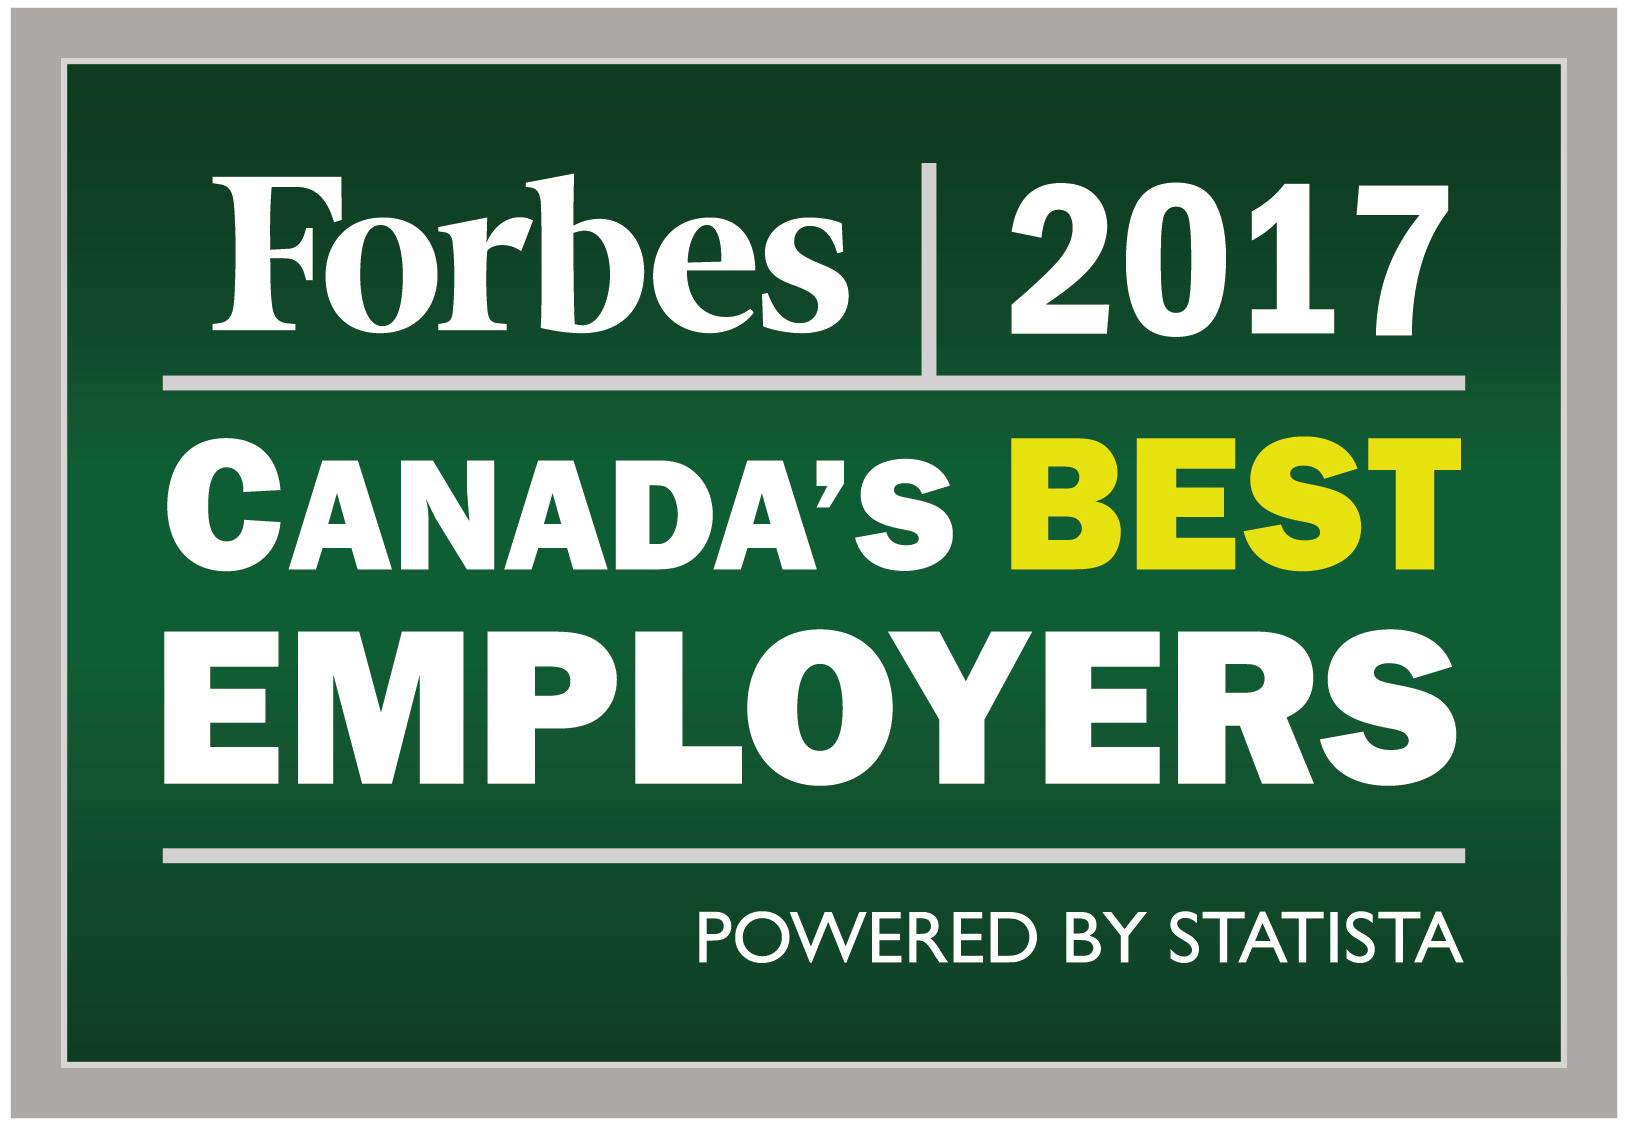 Forbes 2017 Canada's Best Employer